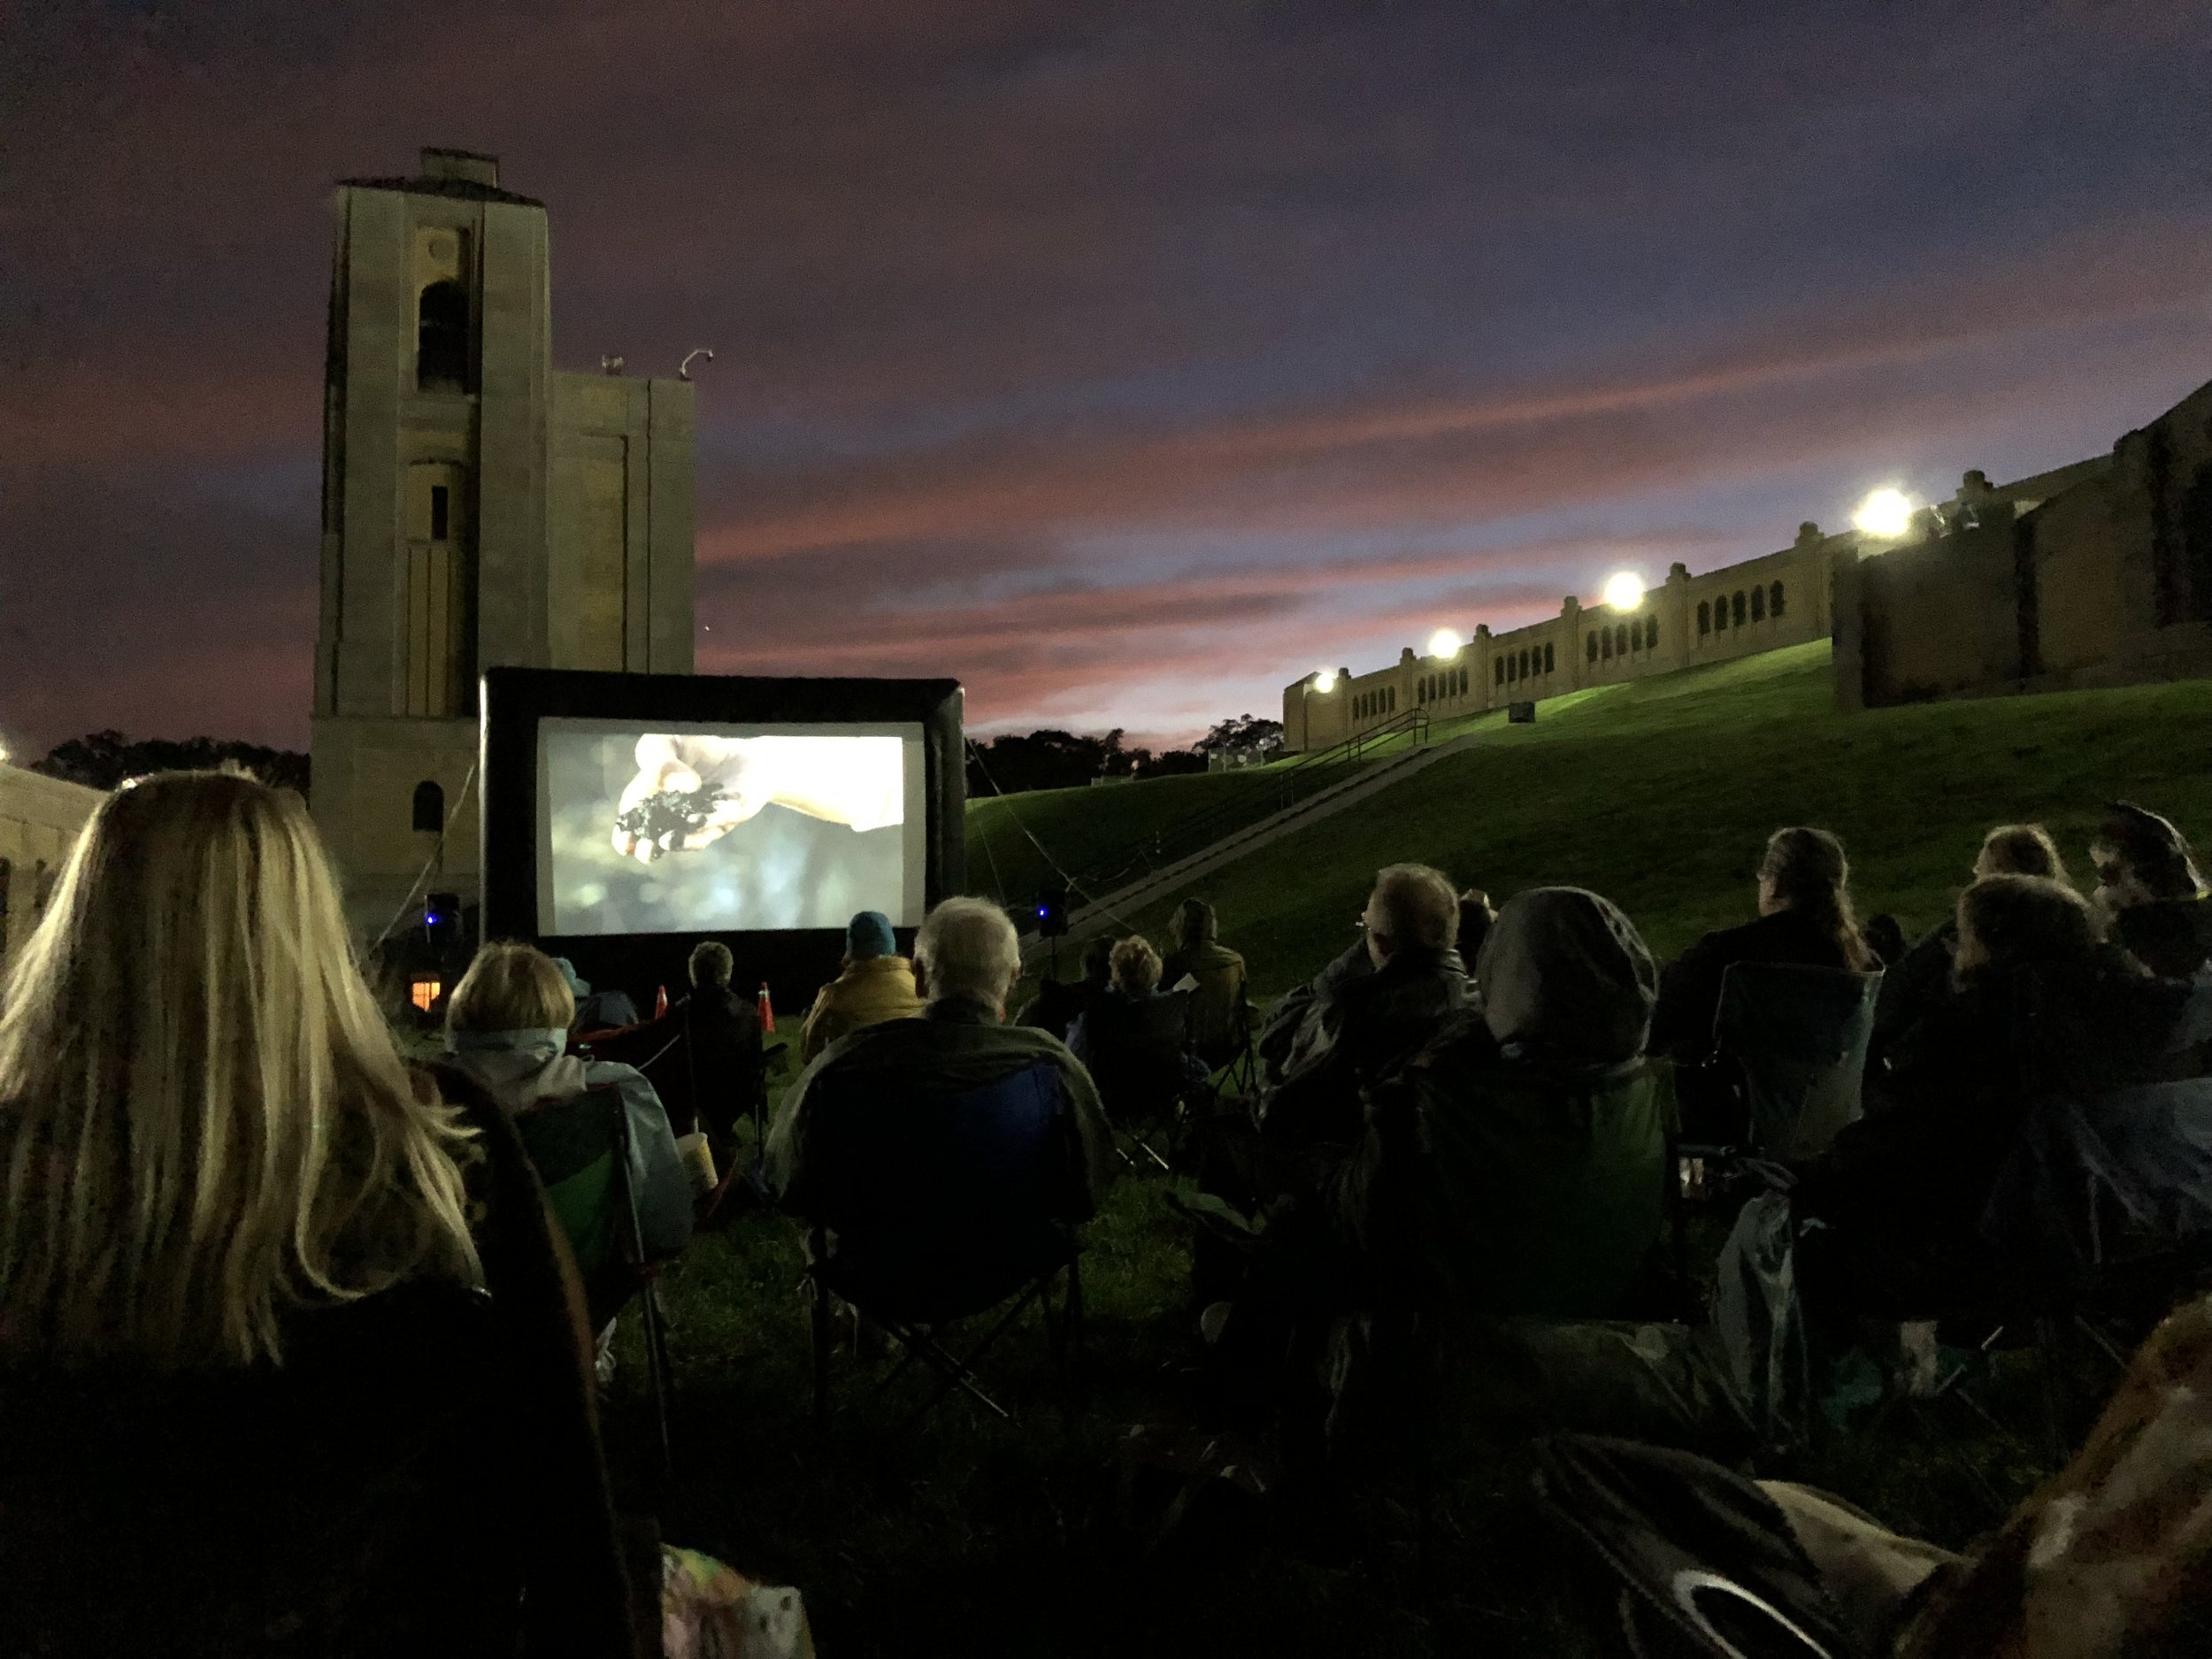 Water Docs Where-You-Live   screening of  Beyond Crisis  on the grounds of the R.C. Harris Water Treatment Plant, Saturday, September 22, 2018. Want to host your own Water Docs Where-You-Live screening in your community? It's easy -   here's how to get started  !